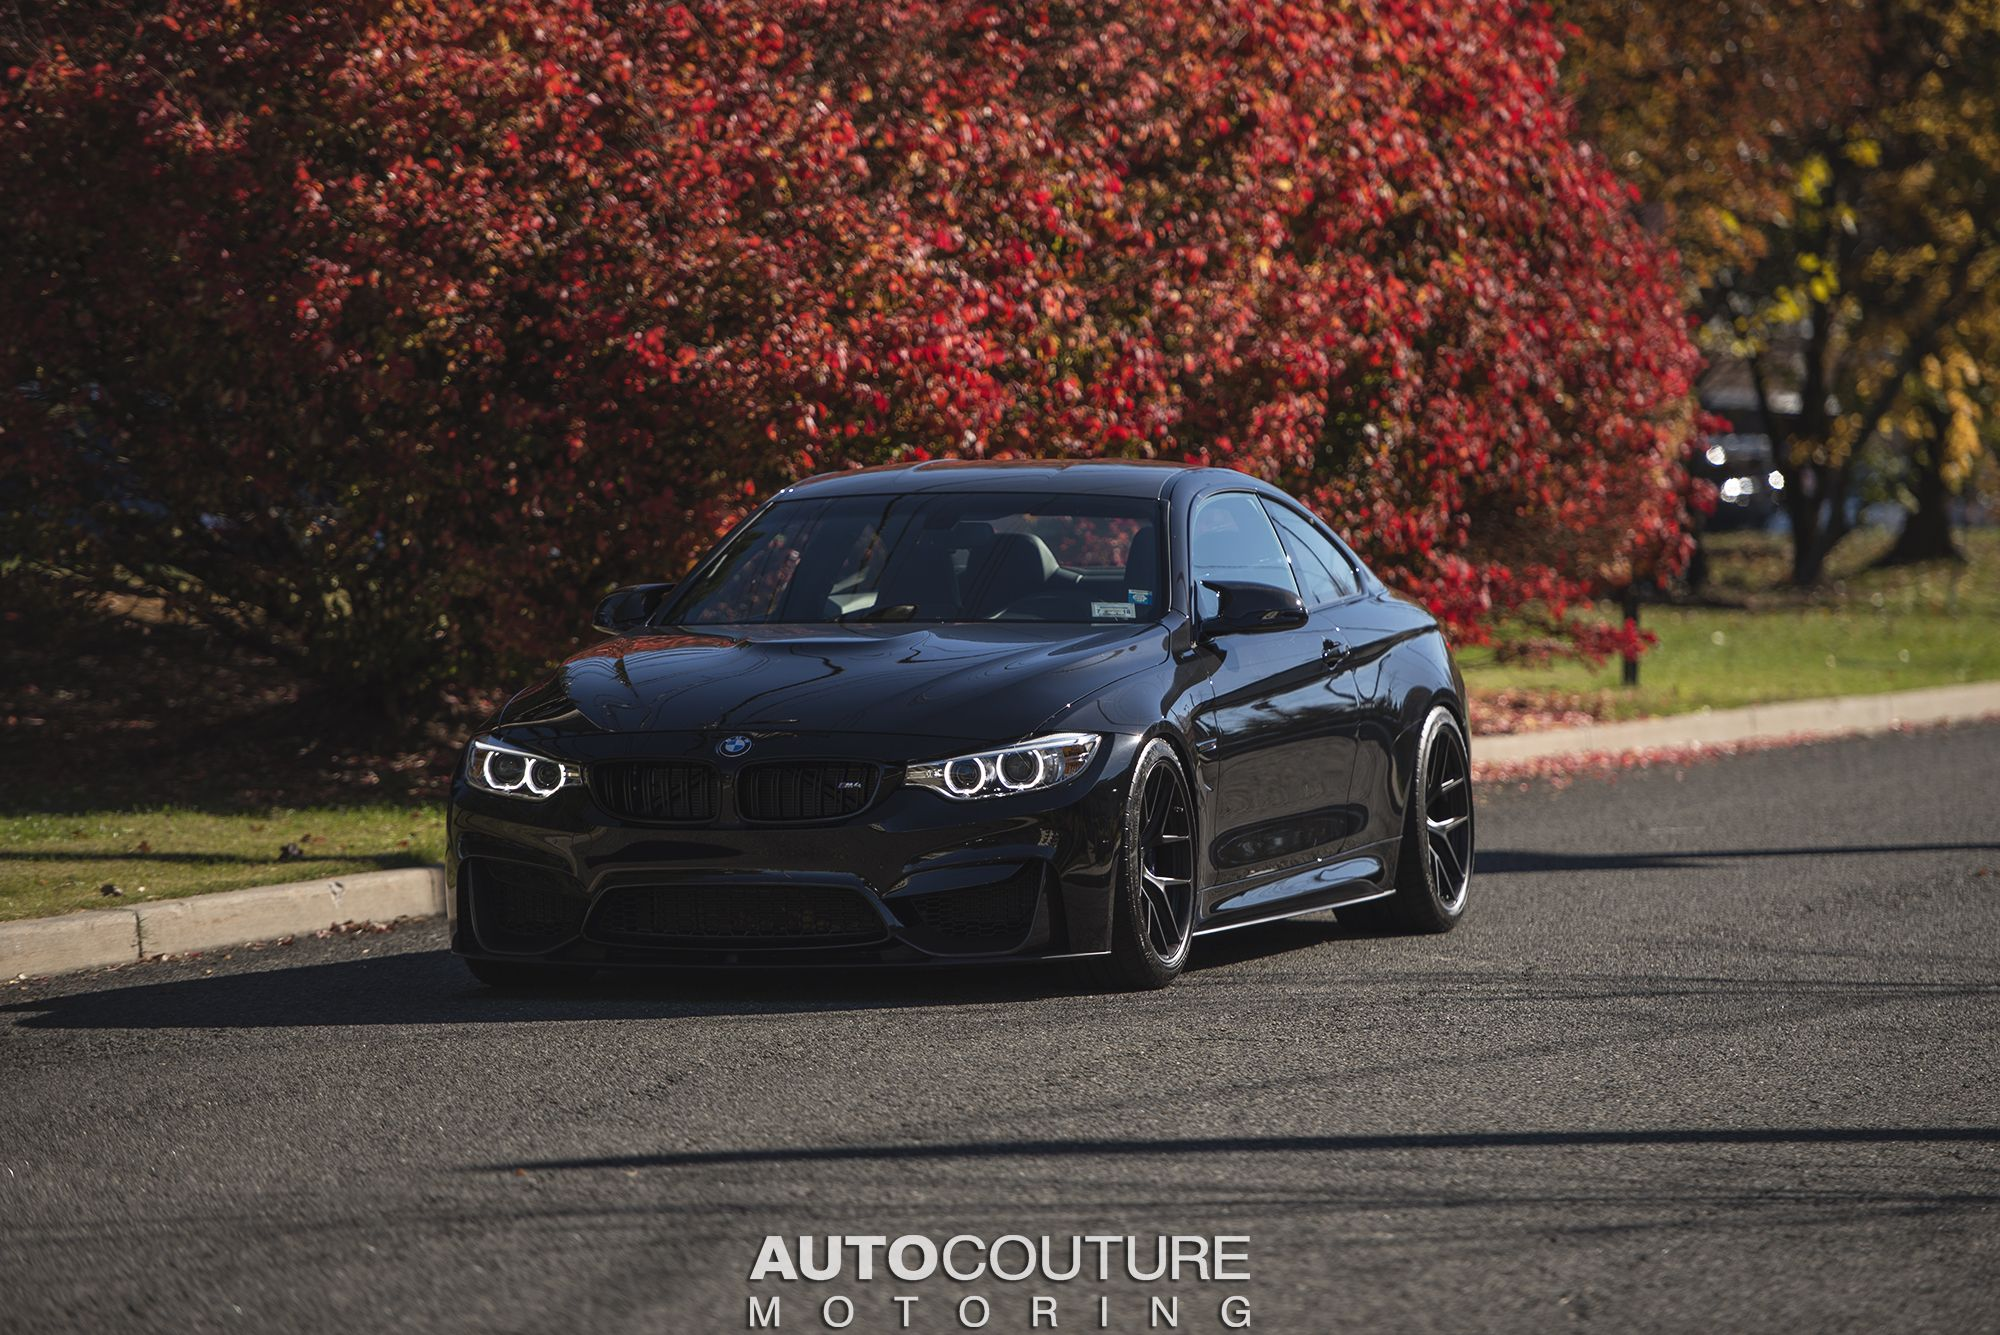 #BMW #F82 #M4 #Coupe #Tuning #SapphireBlack #MPerformance #xDrive #MPower #Drift #Badass #Strong #Provocative #Eyes #Sexy #Hot #Burn #Live #Life #Love #Follow #Your #Heart #BMWLife